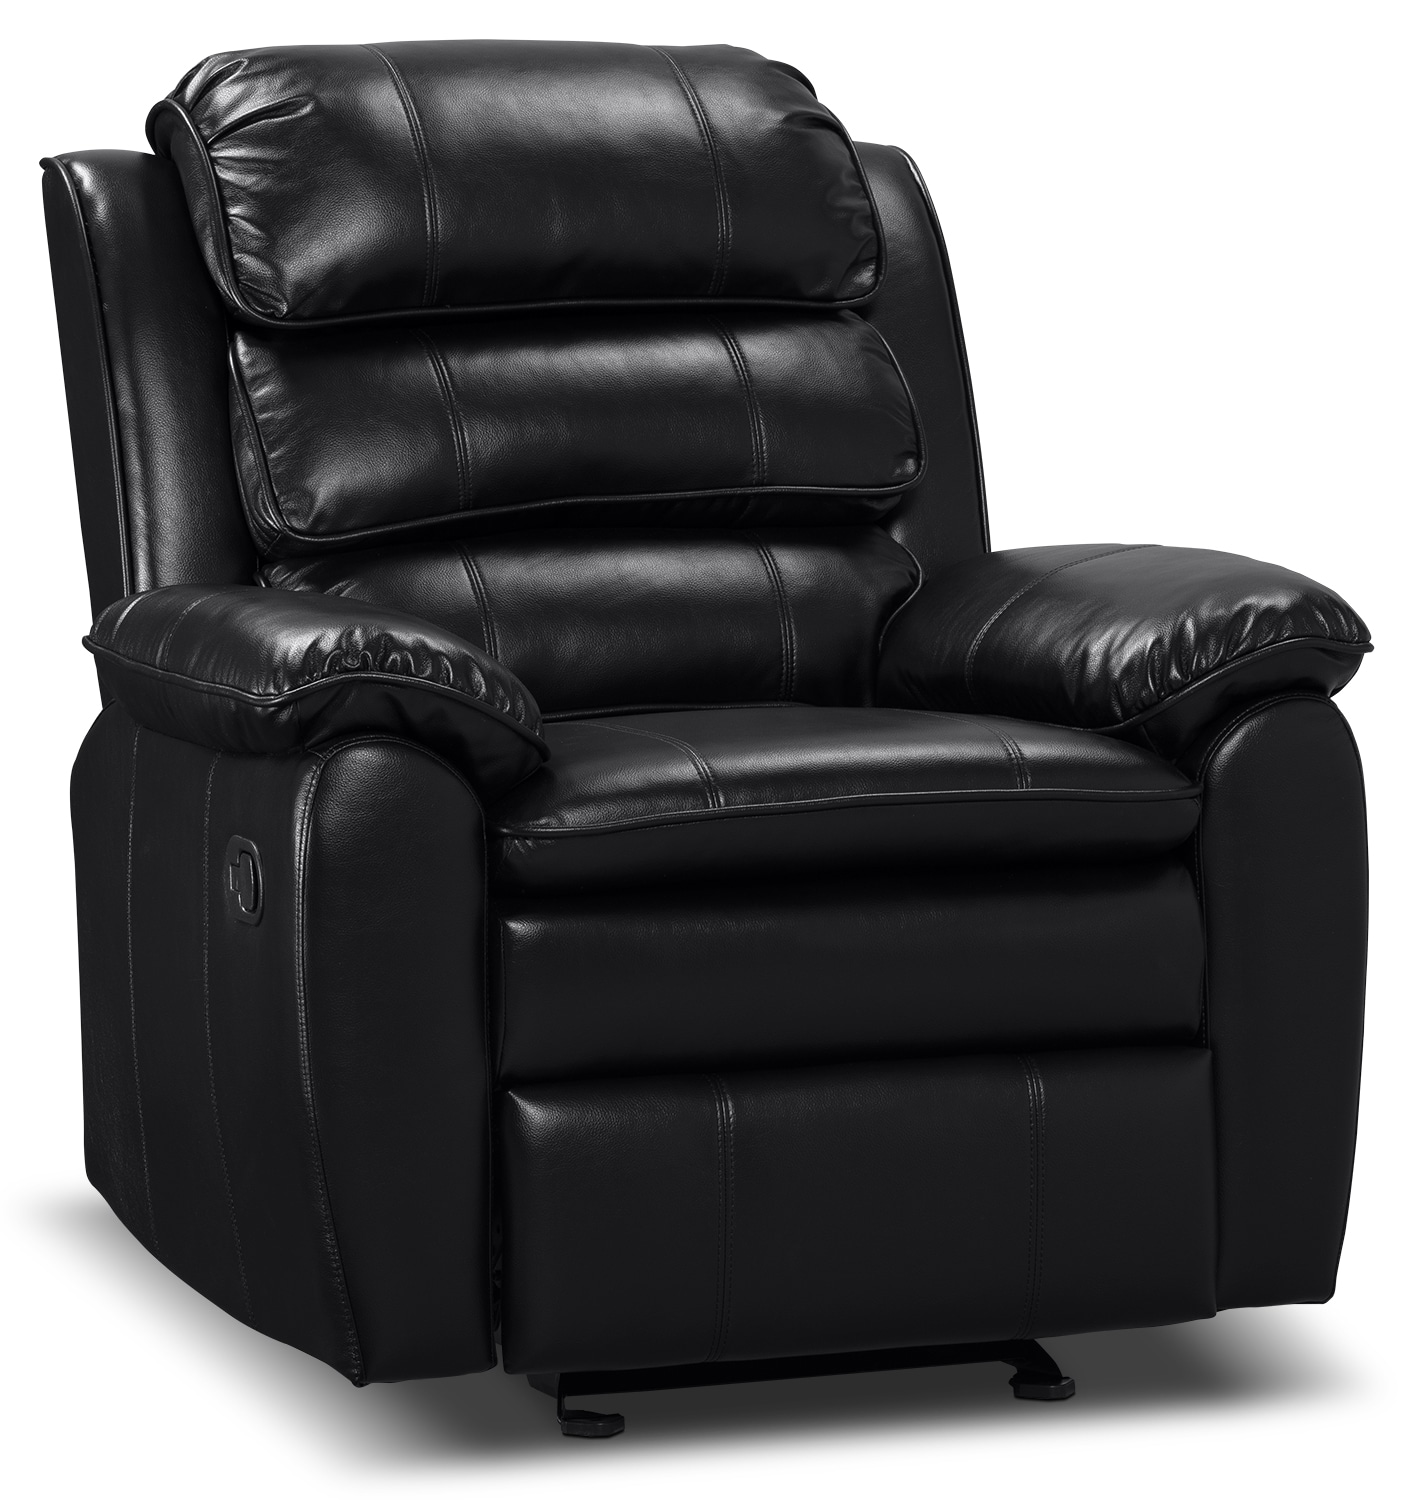 Reclining Leather Chair Adam Leather Look Fabric Reclining Glider Chair Black